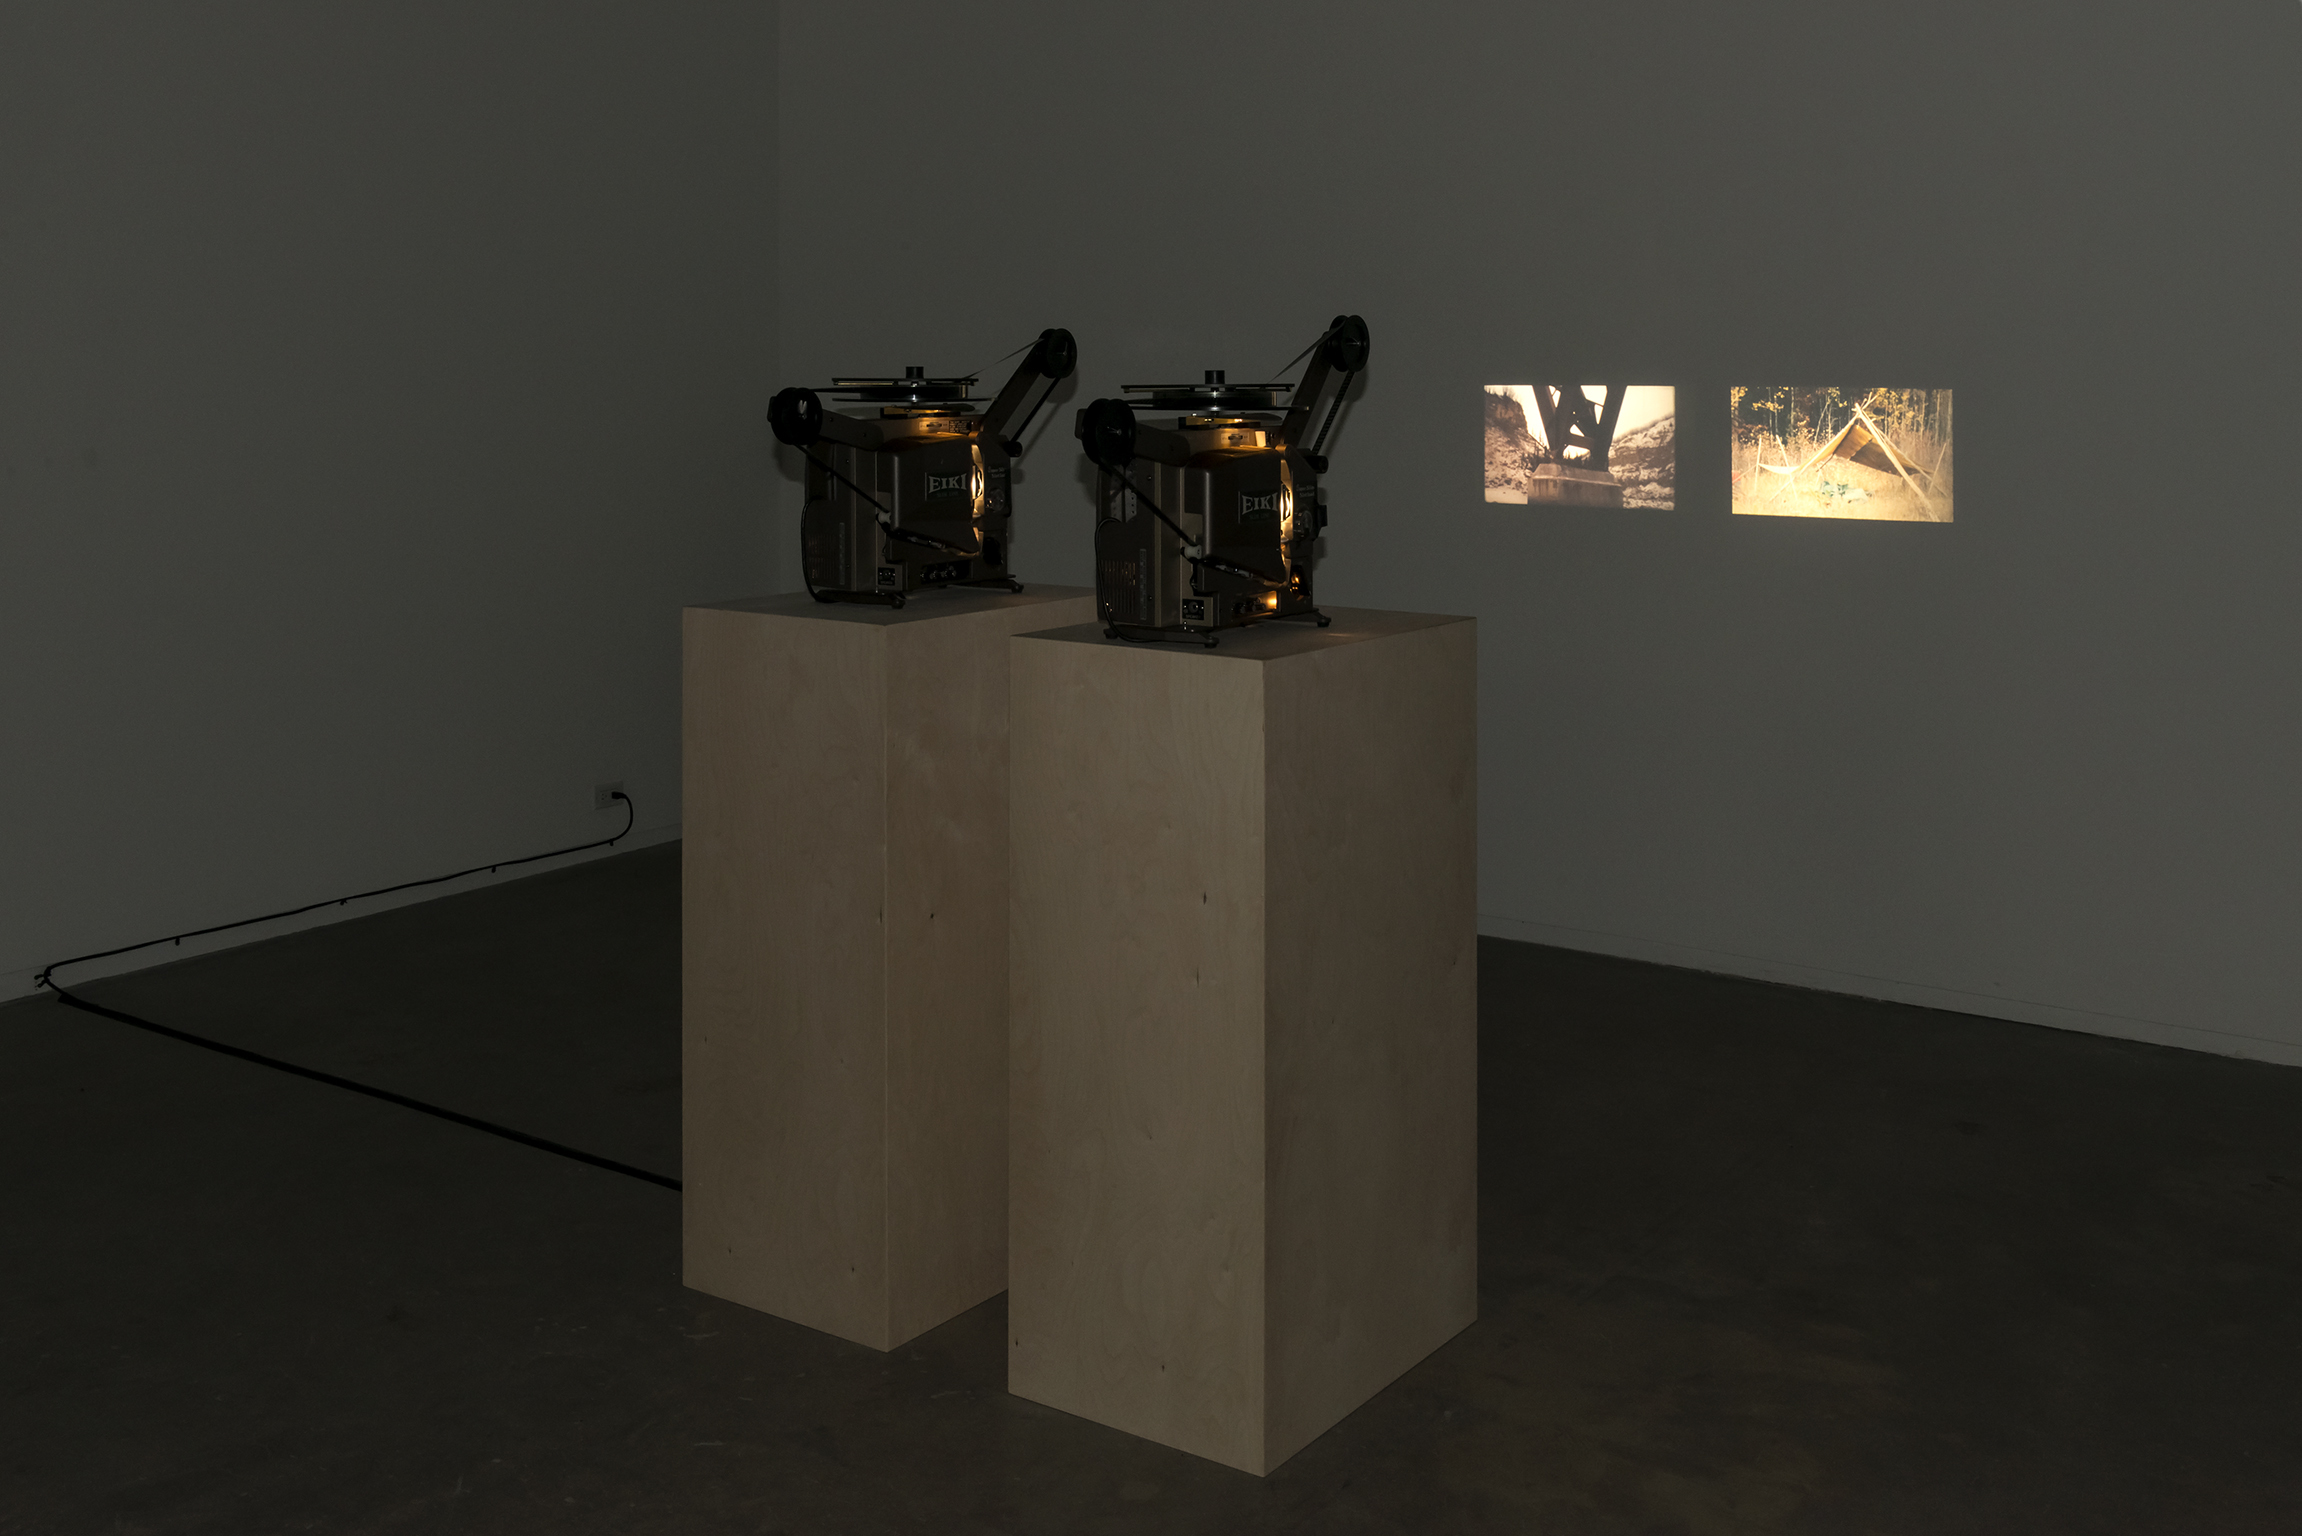 ​Brian Jungen and Duane Linklater, Lean, 2012, super 16mm film loop on projector, 10 minutes by